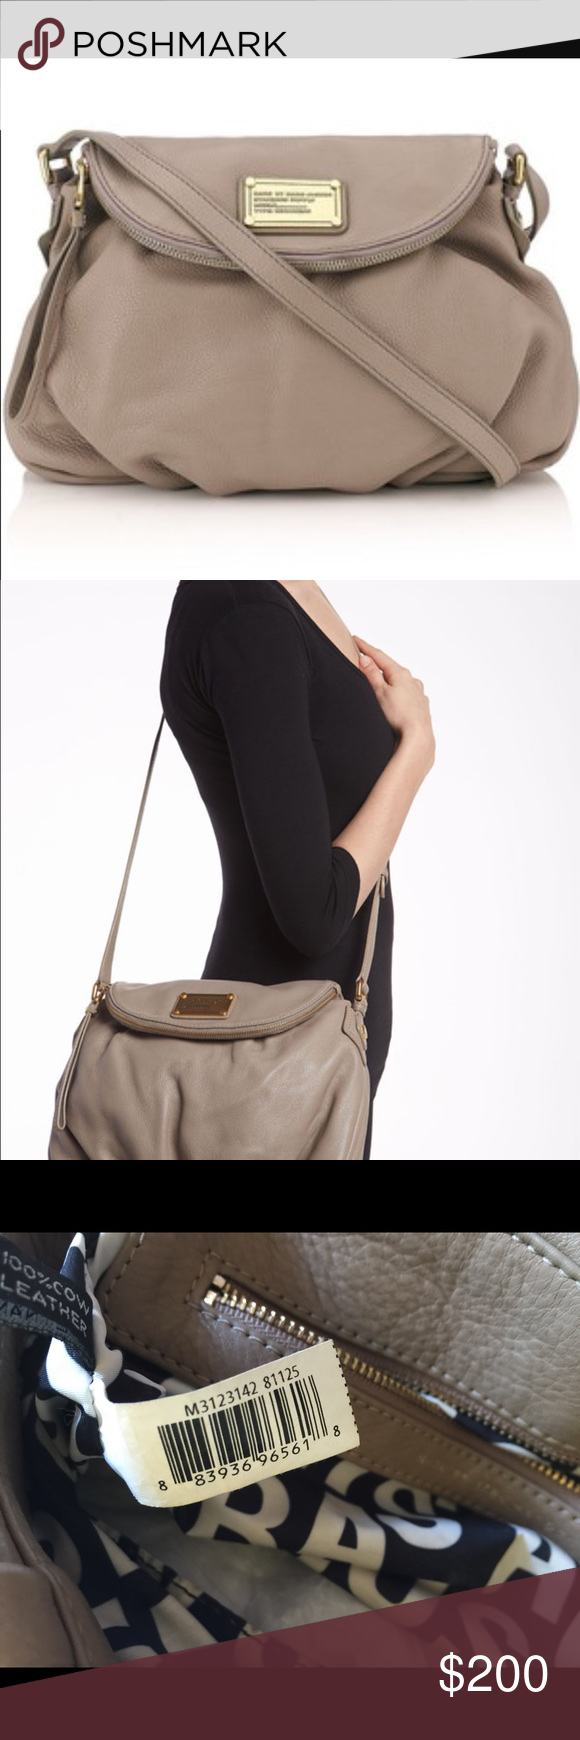 Natasha Classic Q This pebbled leather cross-body bag features a logo plate, zip pocket, and magnetic closure at the front flap. Pleating at bottom. Antiqued gold-tone hardware. Adjustable shoulder strap. Logo-lined interior features 1 zip pocket and 2 patch pockets.  Dimensions 8 x 12 x 16 Marc by Marc Jacobs Bags Crossbody Bags